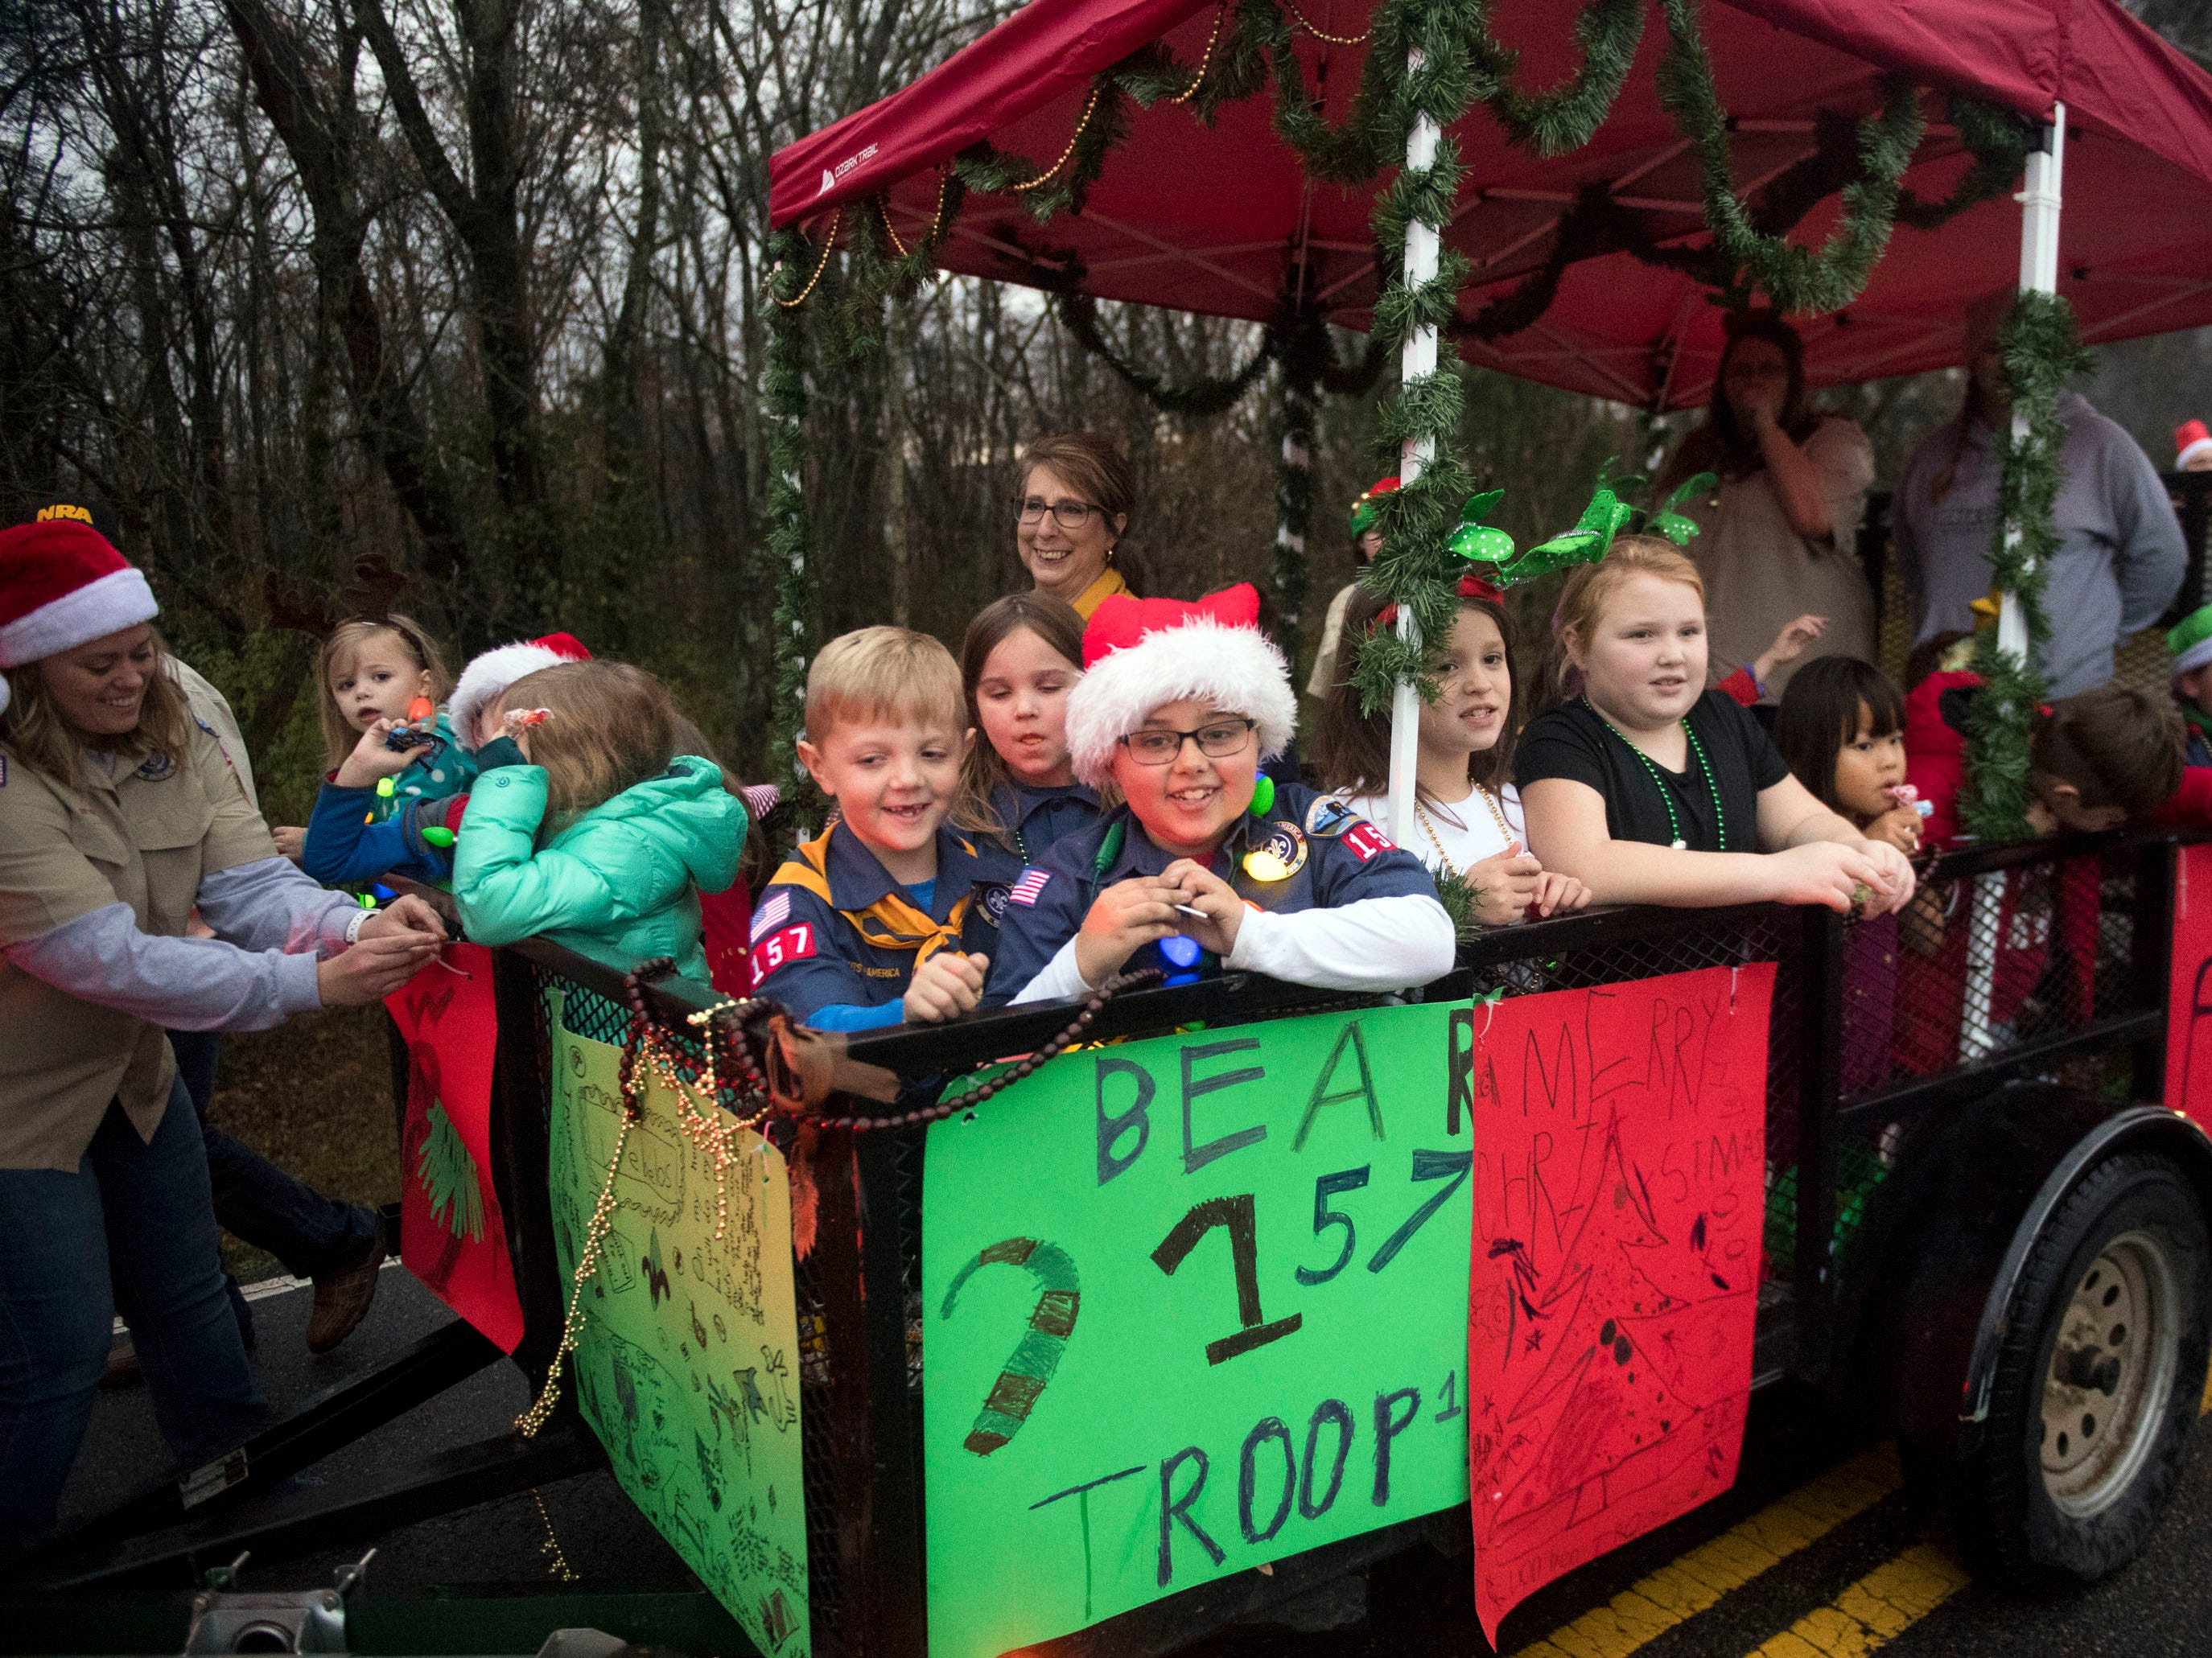 Powell Cub Scout Pack 157 in the Powell Lions Club Christmas Parade on Saturday, December 1, 2018.